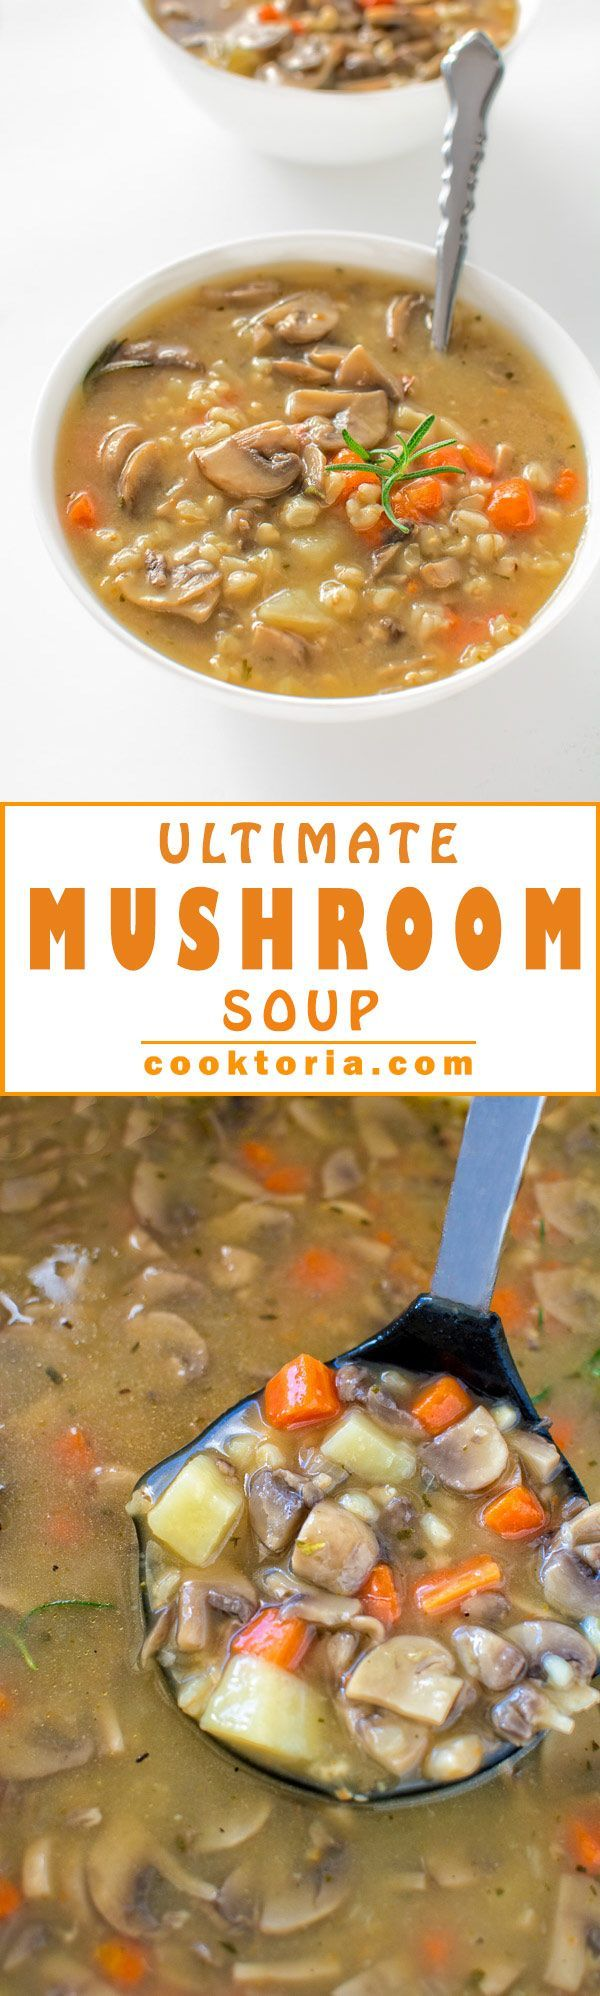 Hearty and comforting, healthy and low-calorie - this vegetarian Ultimate Mushroom Soup recipe is the only one you'll ever need! ❤ COOKTORIA.COM